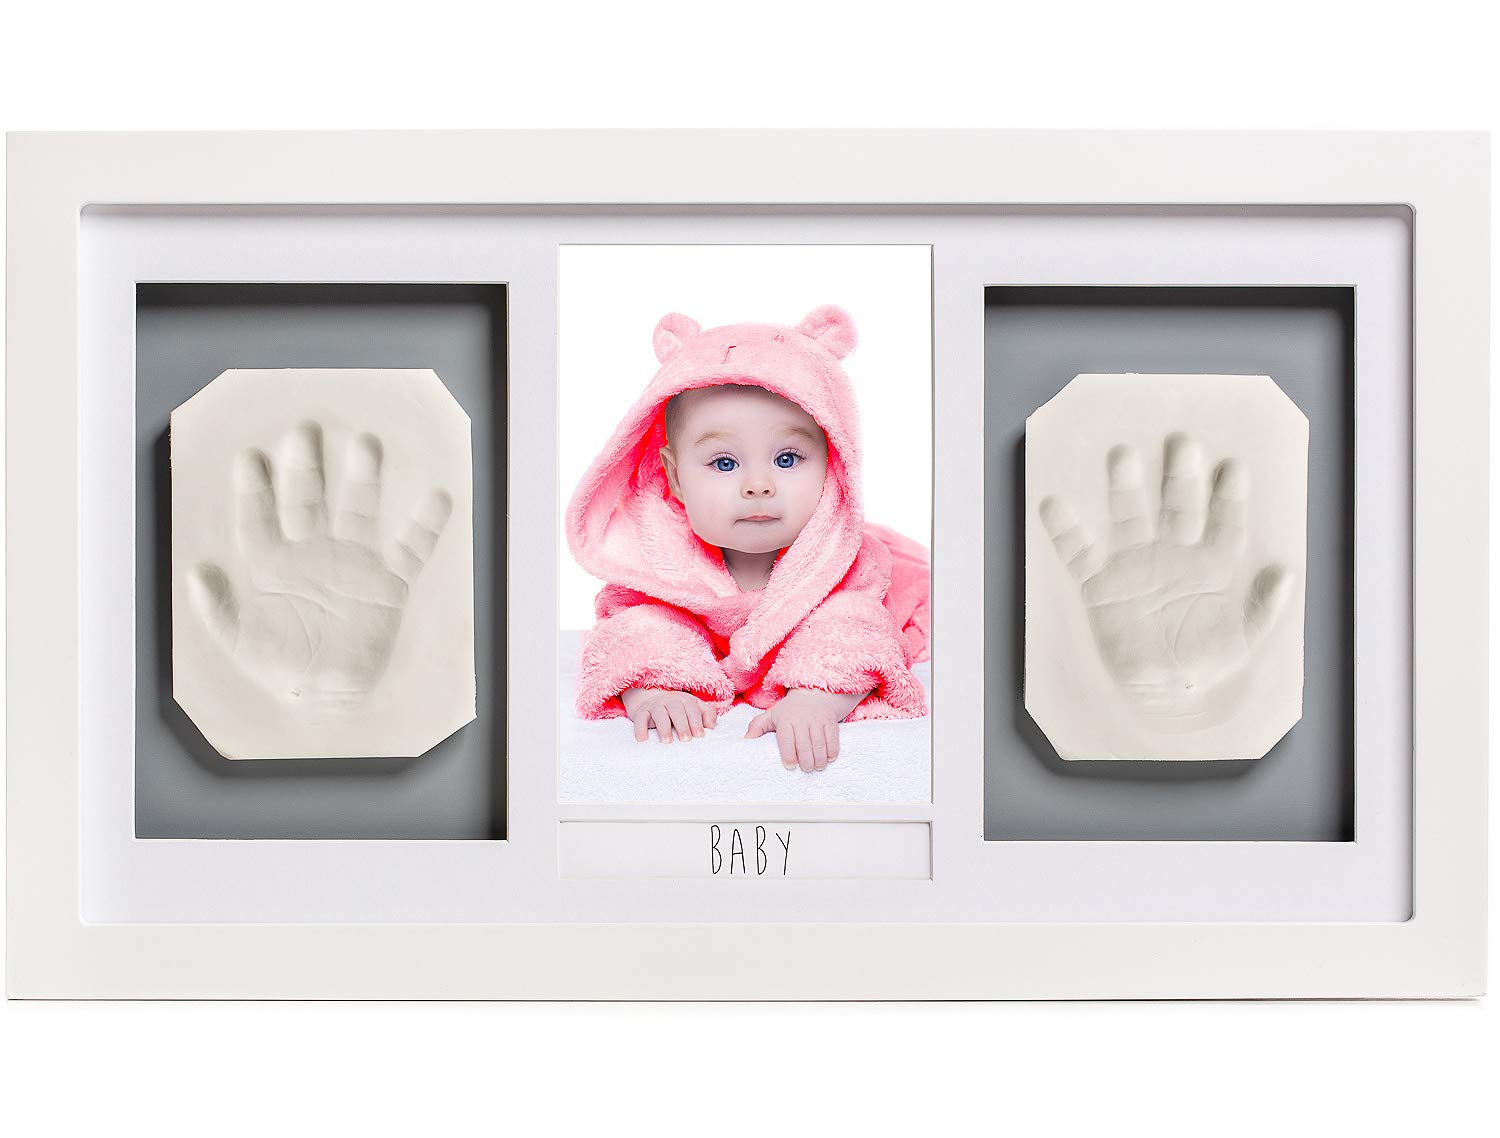 Lovely Baby Handprint or Footprint Picture Frame Kit -The Perfect Shower Gift for Boys and Girls, and A Forever Registry Memory, All in A Premium LARGE Wood Frame for Keepsake Decoration, Wall or Desk PremiumQP 5415435185